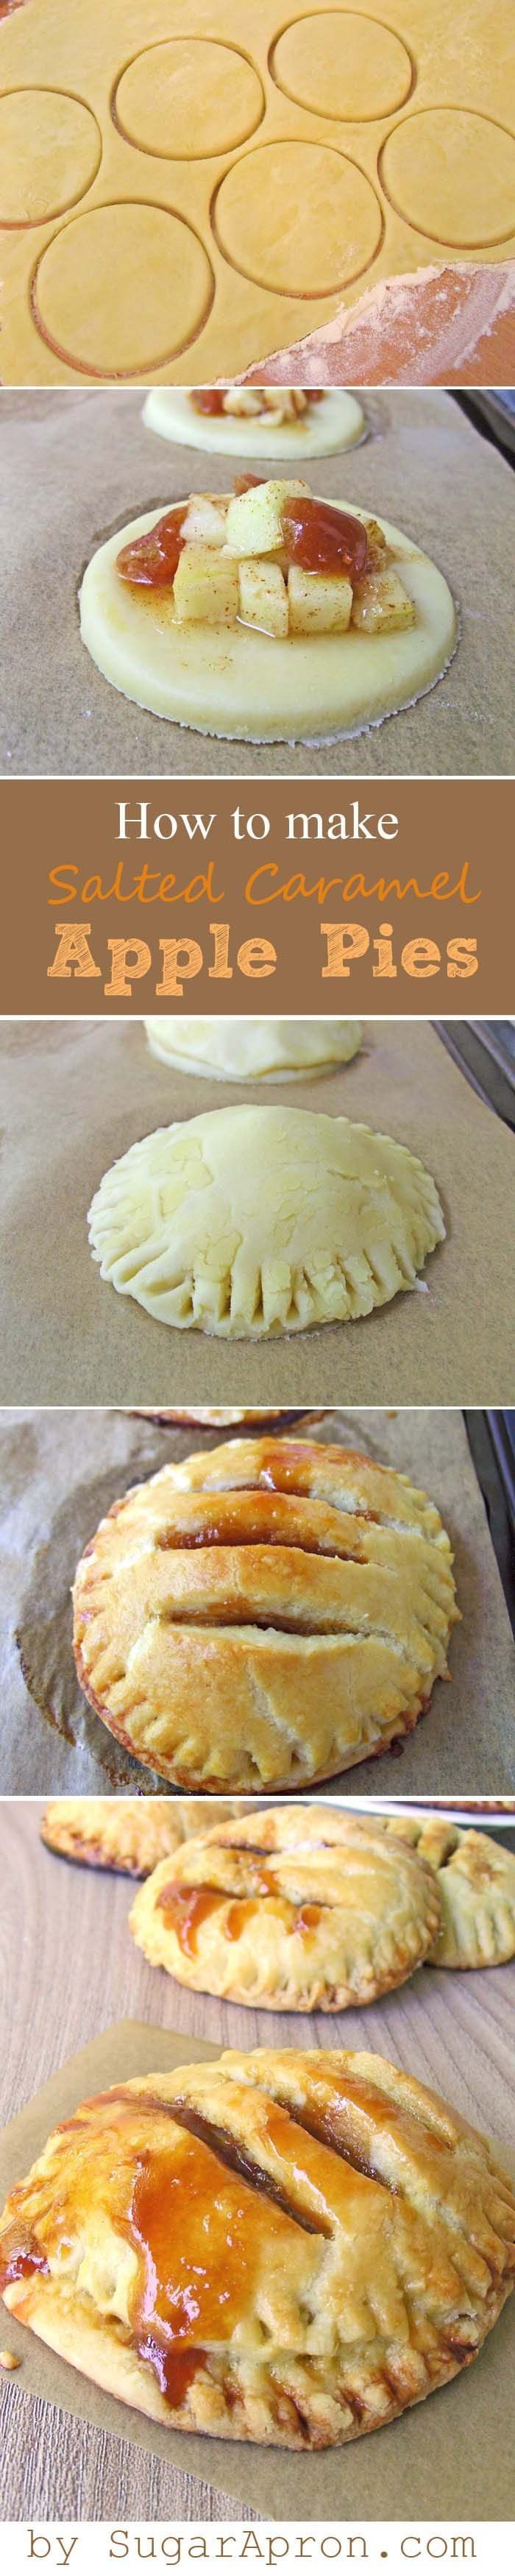 Individual Salted Caramel Apple Pies